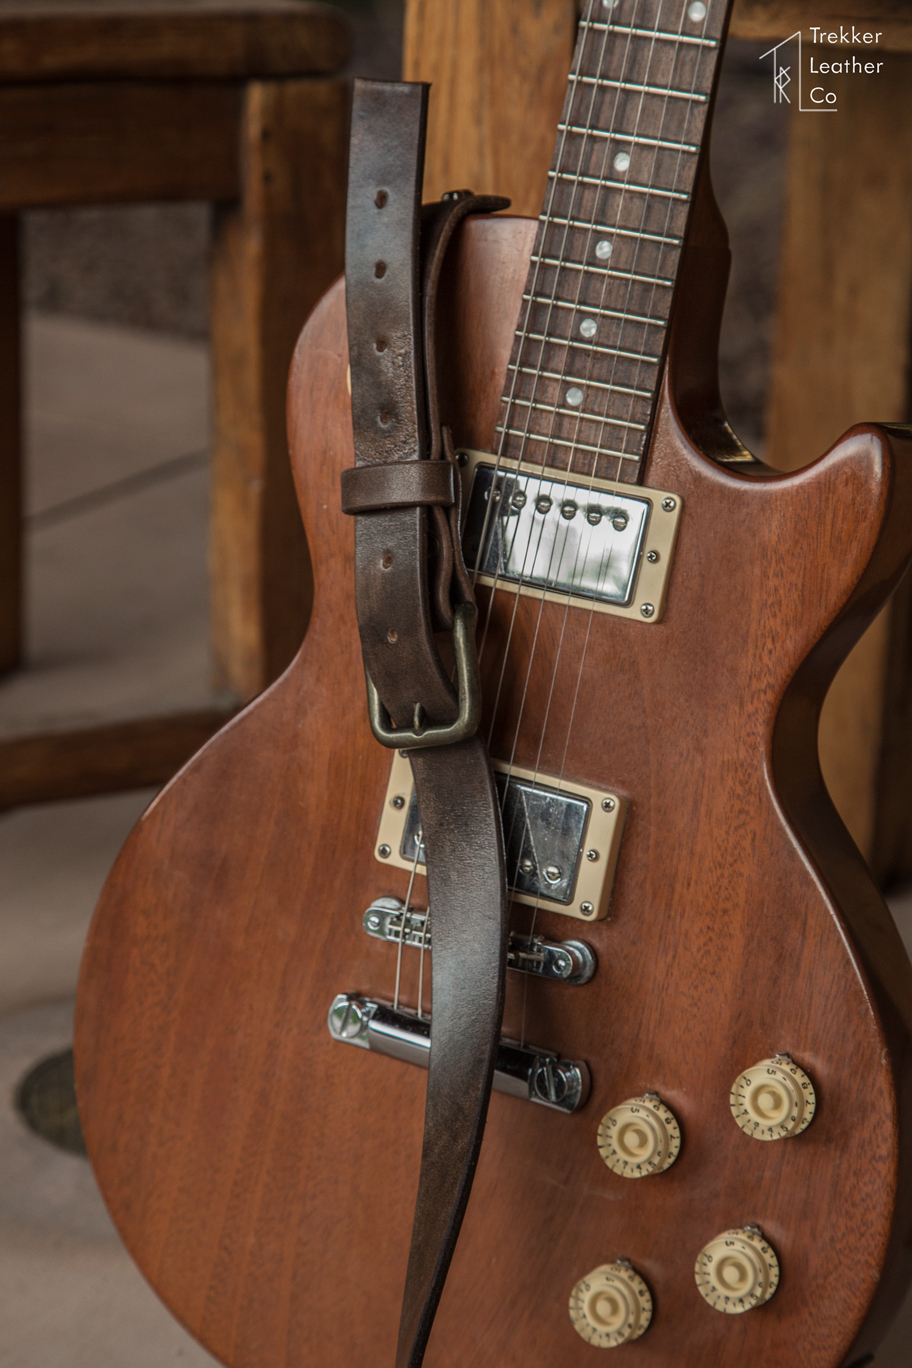 leather electric guitar strap handmade in the usa trekker leather co. Black Bedroom Furniture Sets. Home Design Ideas